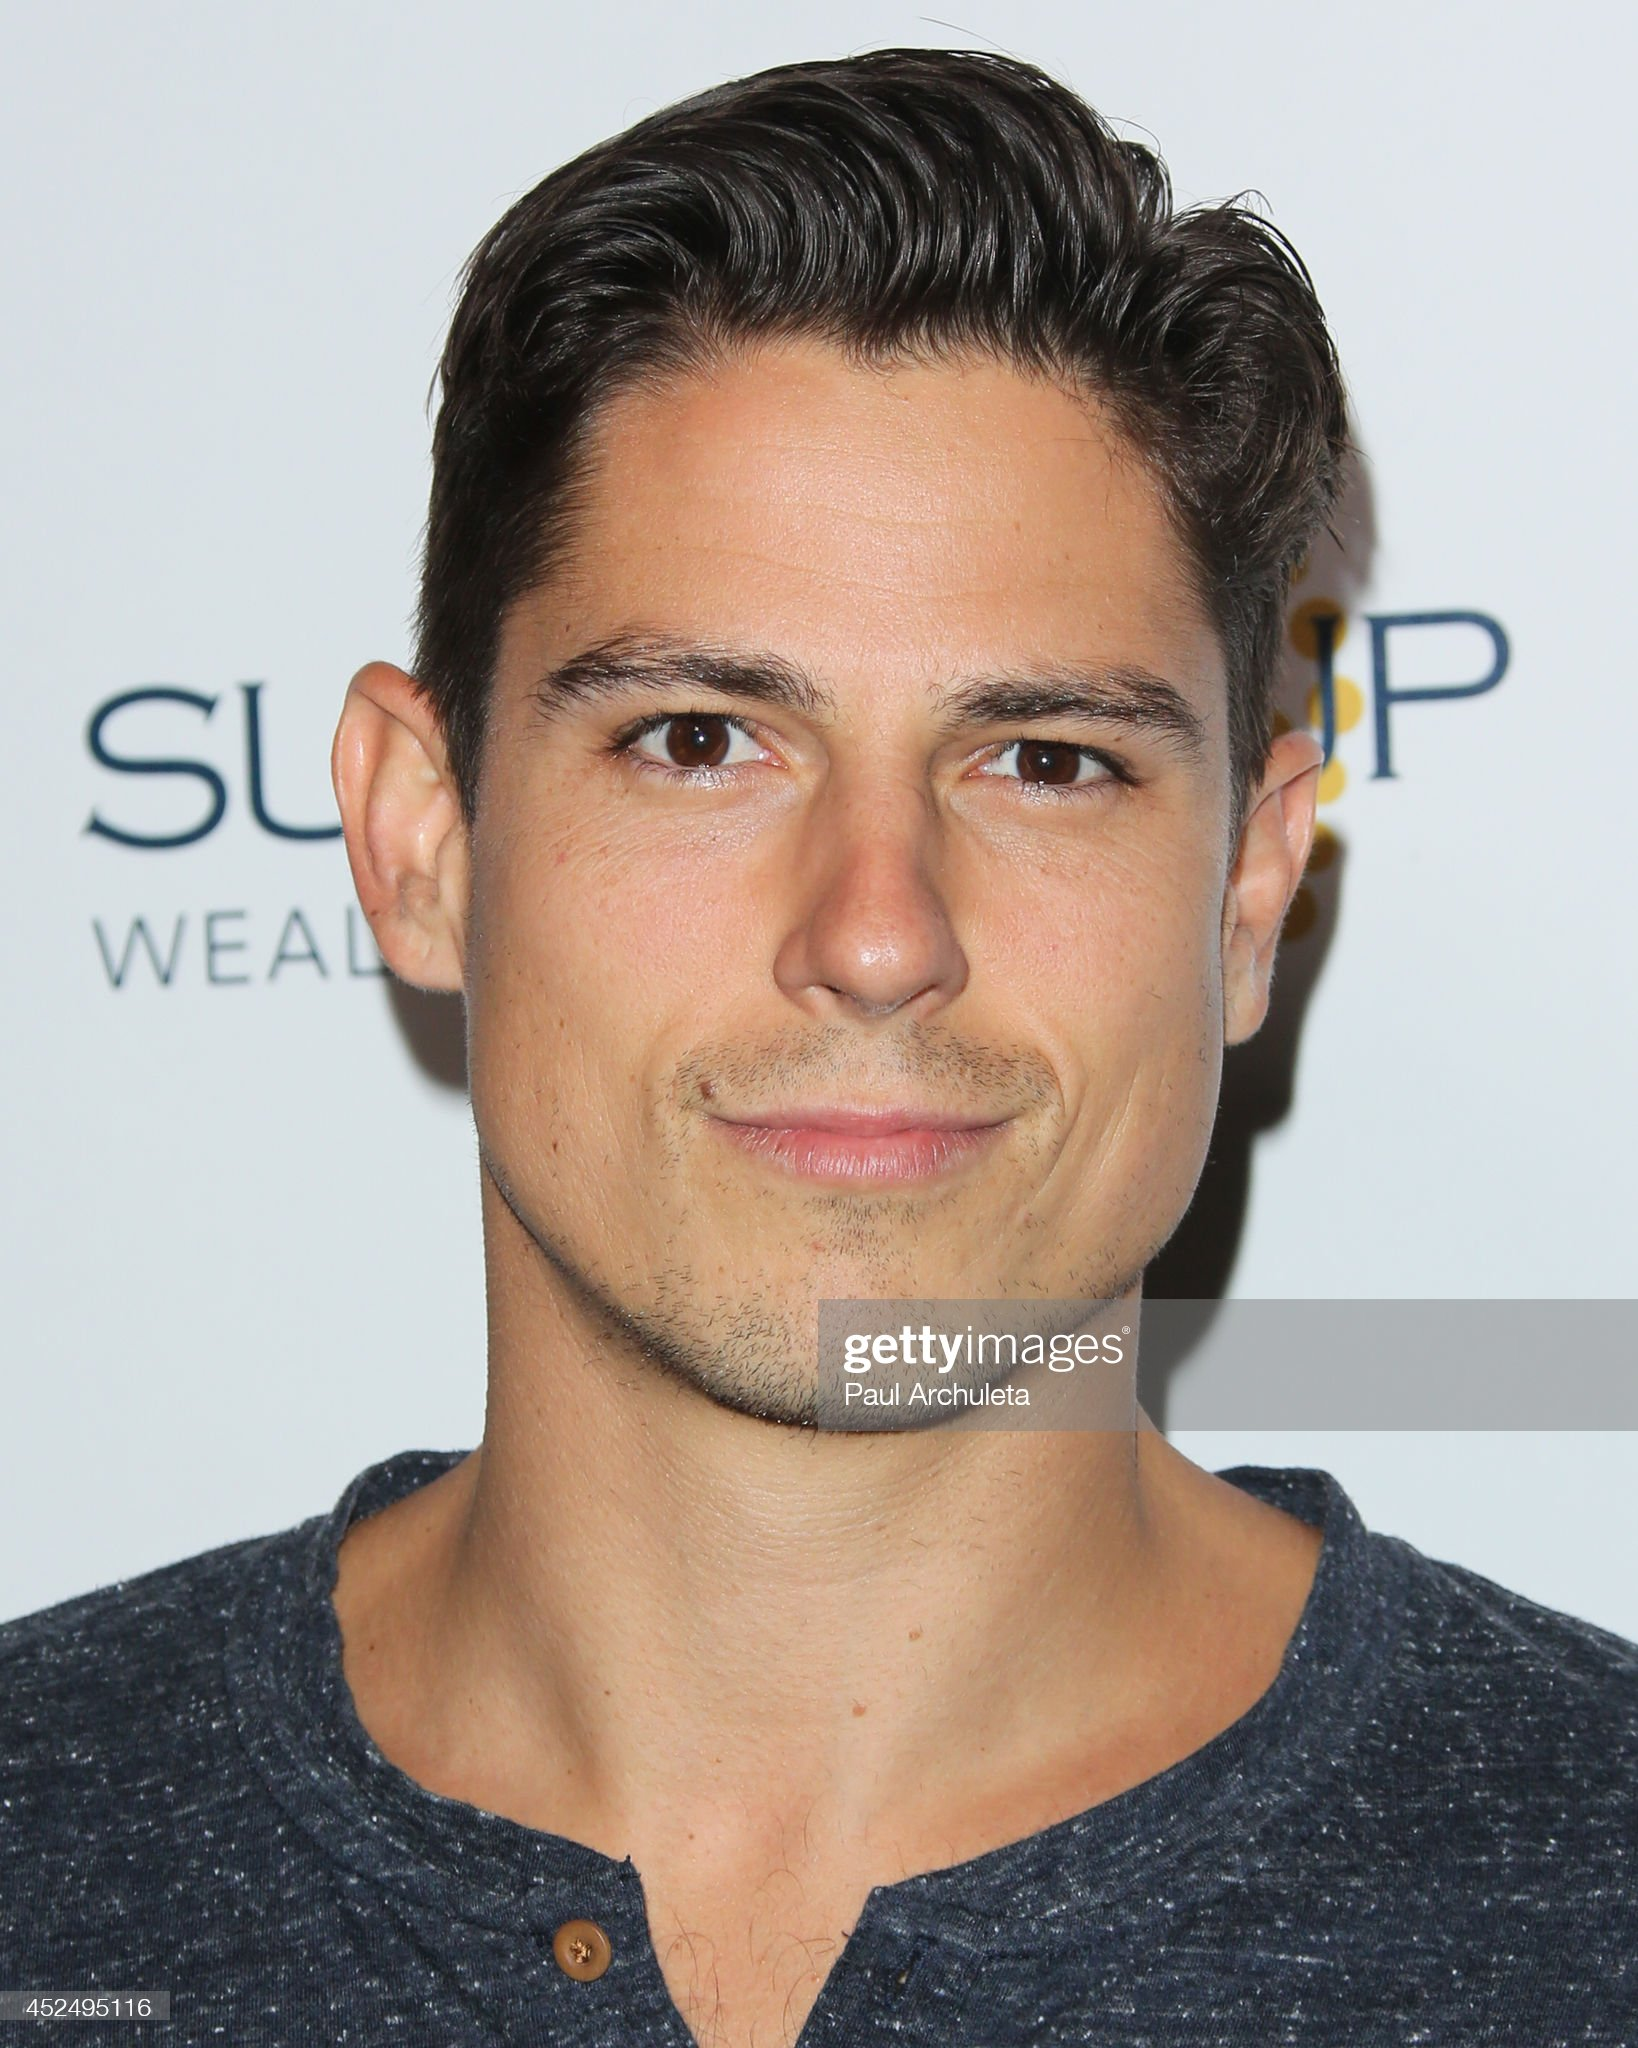 ¿Cuánto mide Sean Faris? - Altura - Real height Actor-sean-faris-attends-matt-leinart-foundations-8th-annual-bowl-picture-id452495116?s=2048x2048